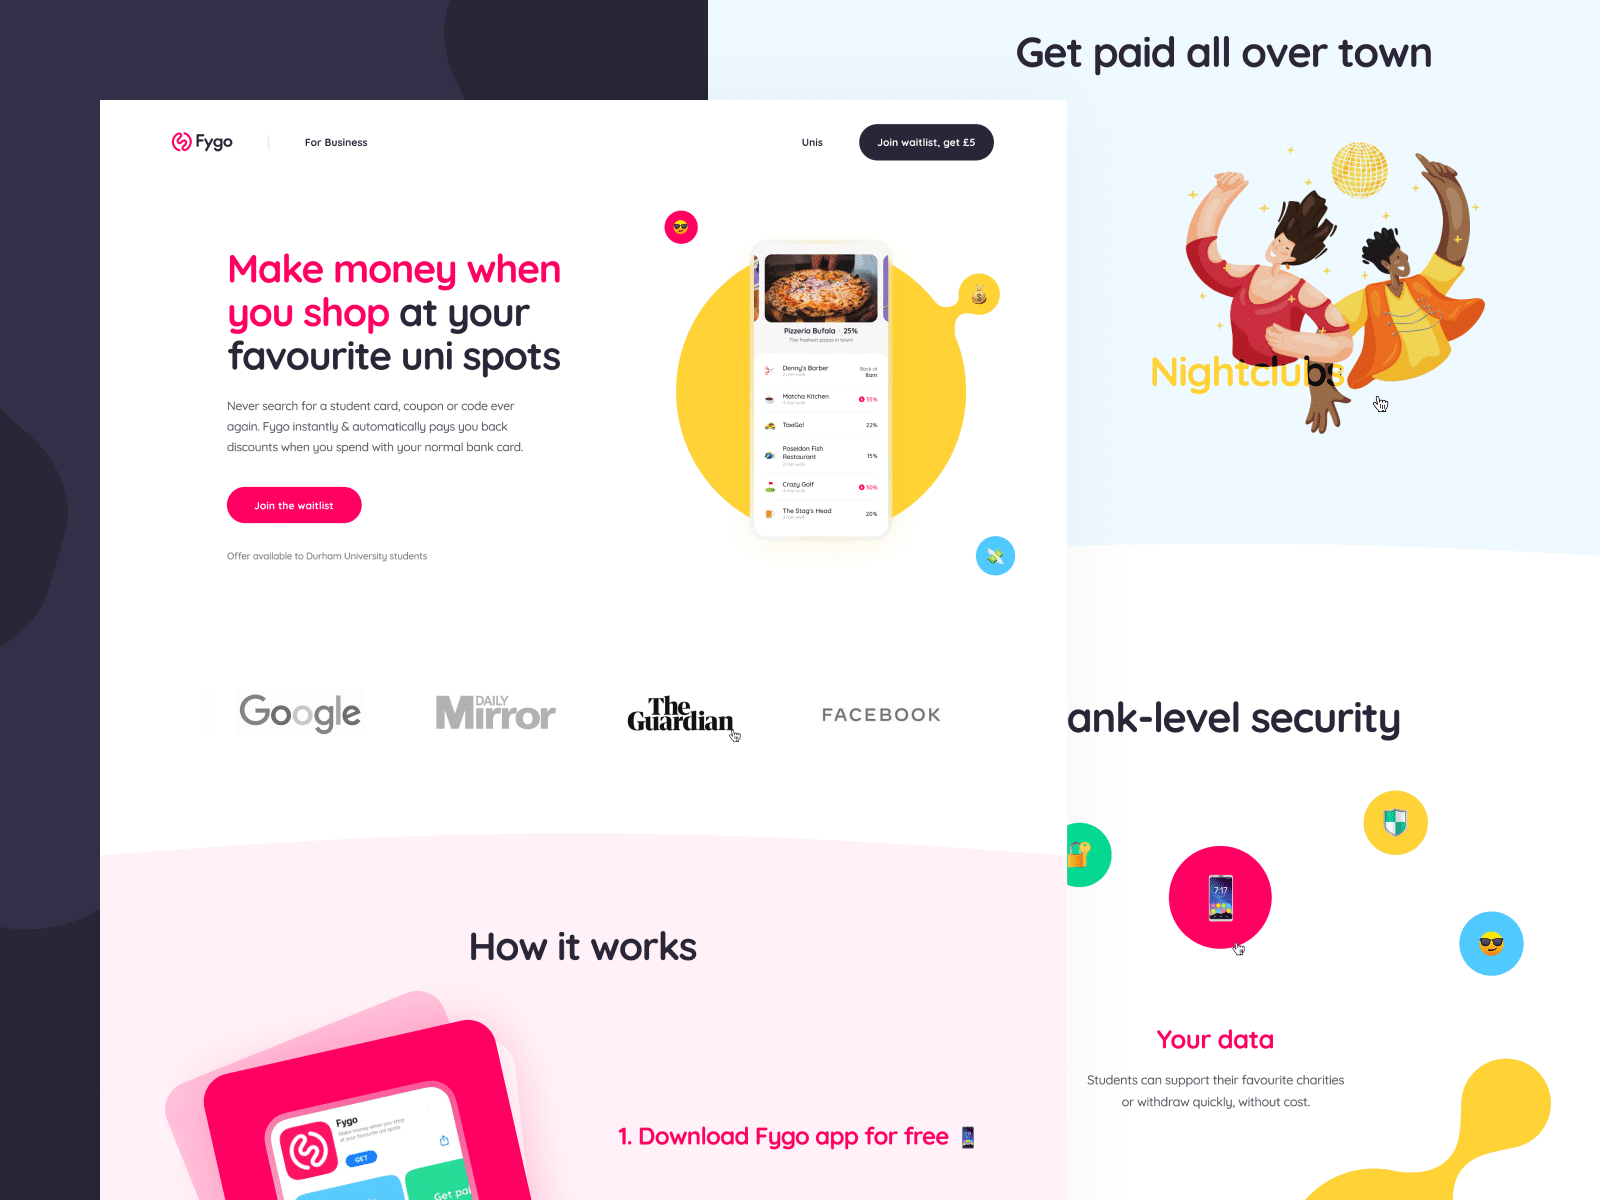 Fygo Landing Page by Cuberto via Dribbble | Informative headline and subheading, clean call-to-action button.